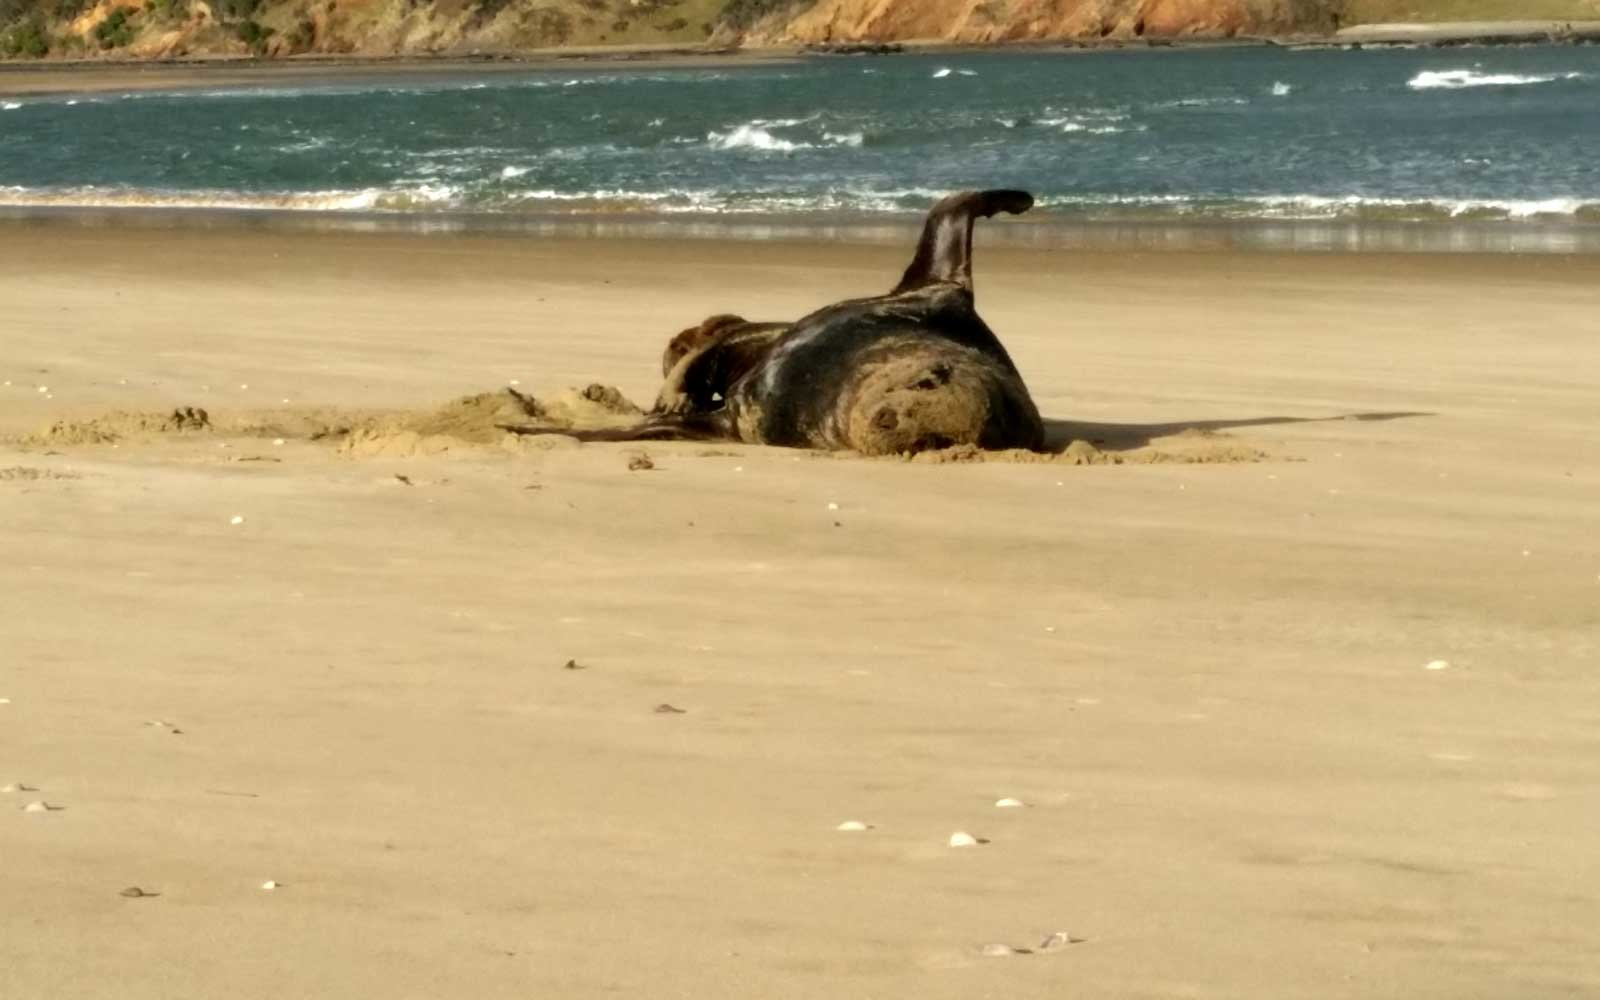 National Institute of Water & Atmospheric Research Ltd (NIWA) found Vacation Photos in Sea Lion feces